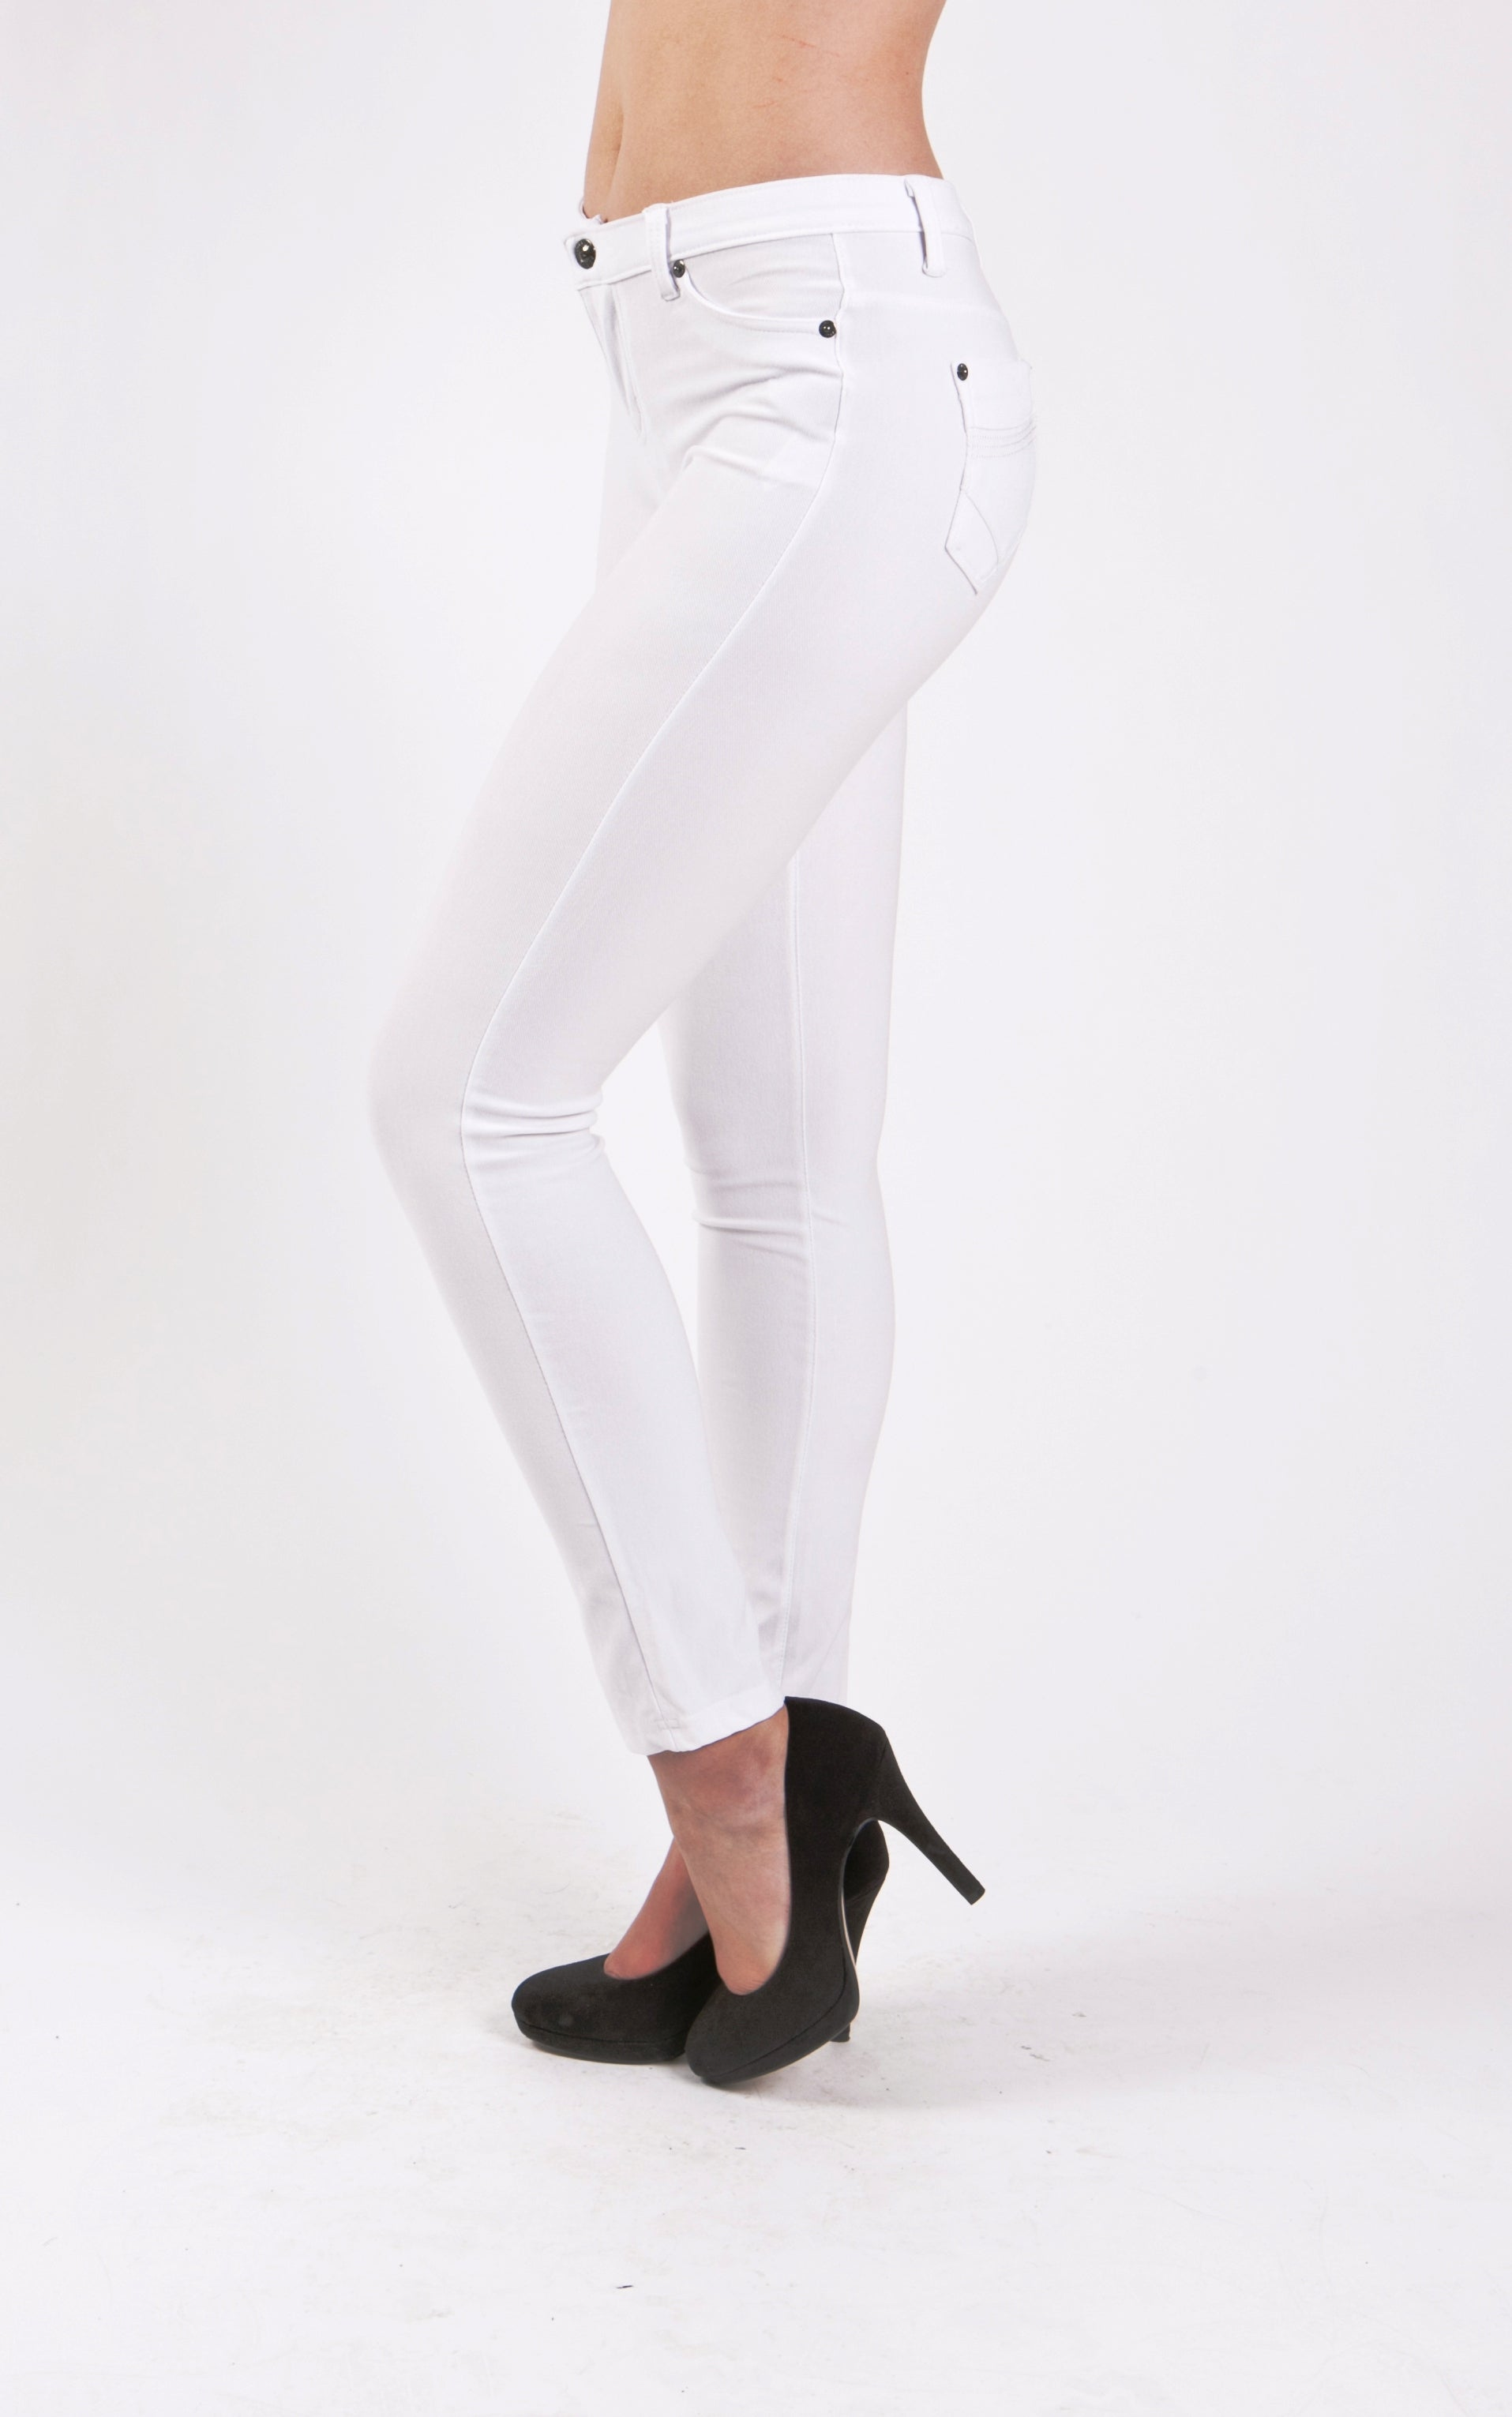 5 Pocket Slim Fit Skinny Pants-White - Home Goods Galore